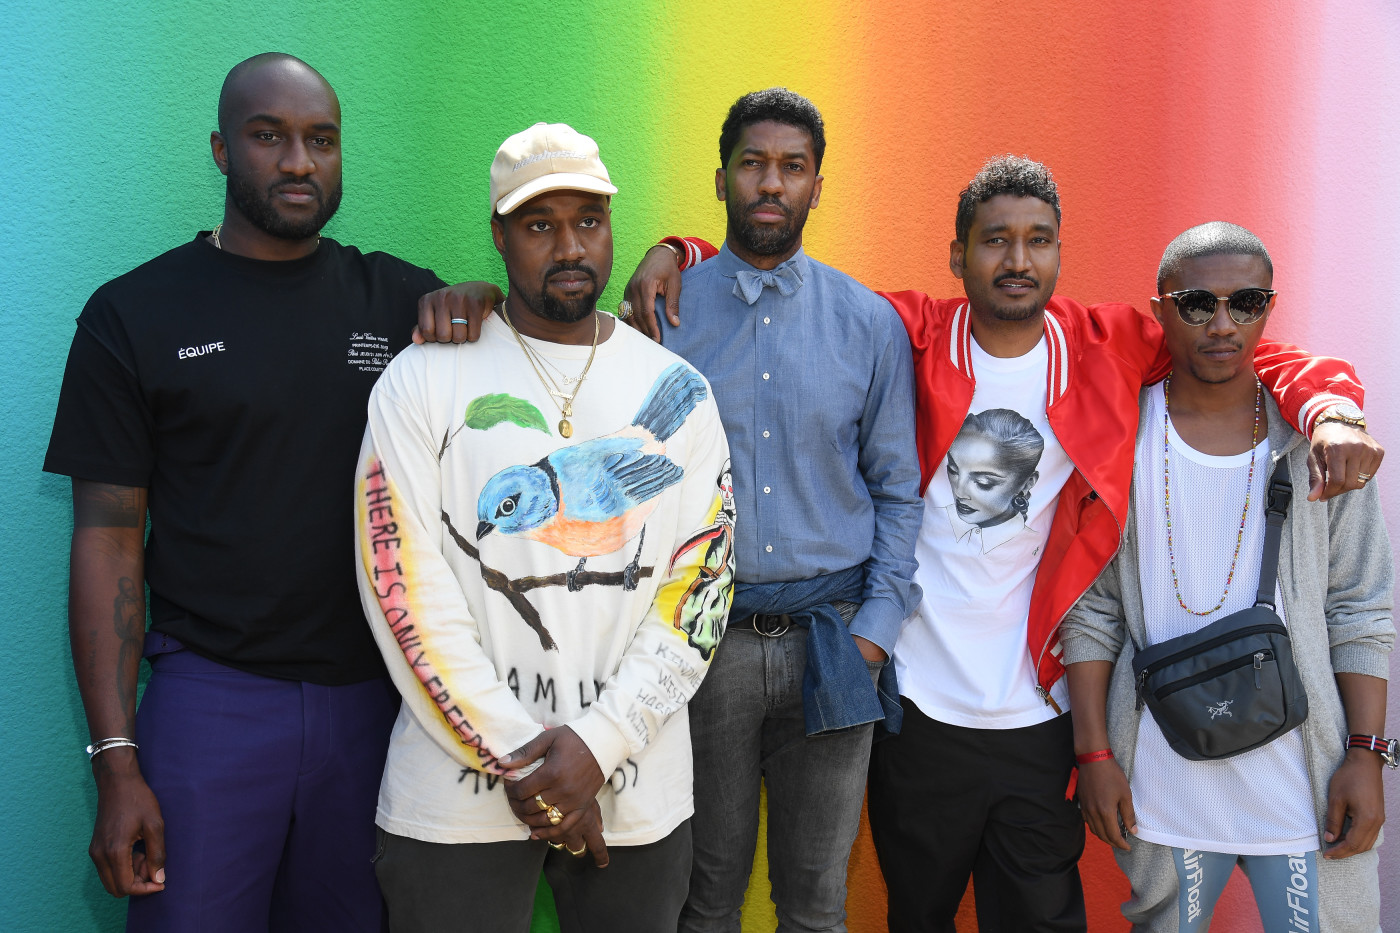 Virgil Abloh, Kanye West, Fonzworth Bentley, Don C, Ibn Jasper